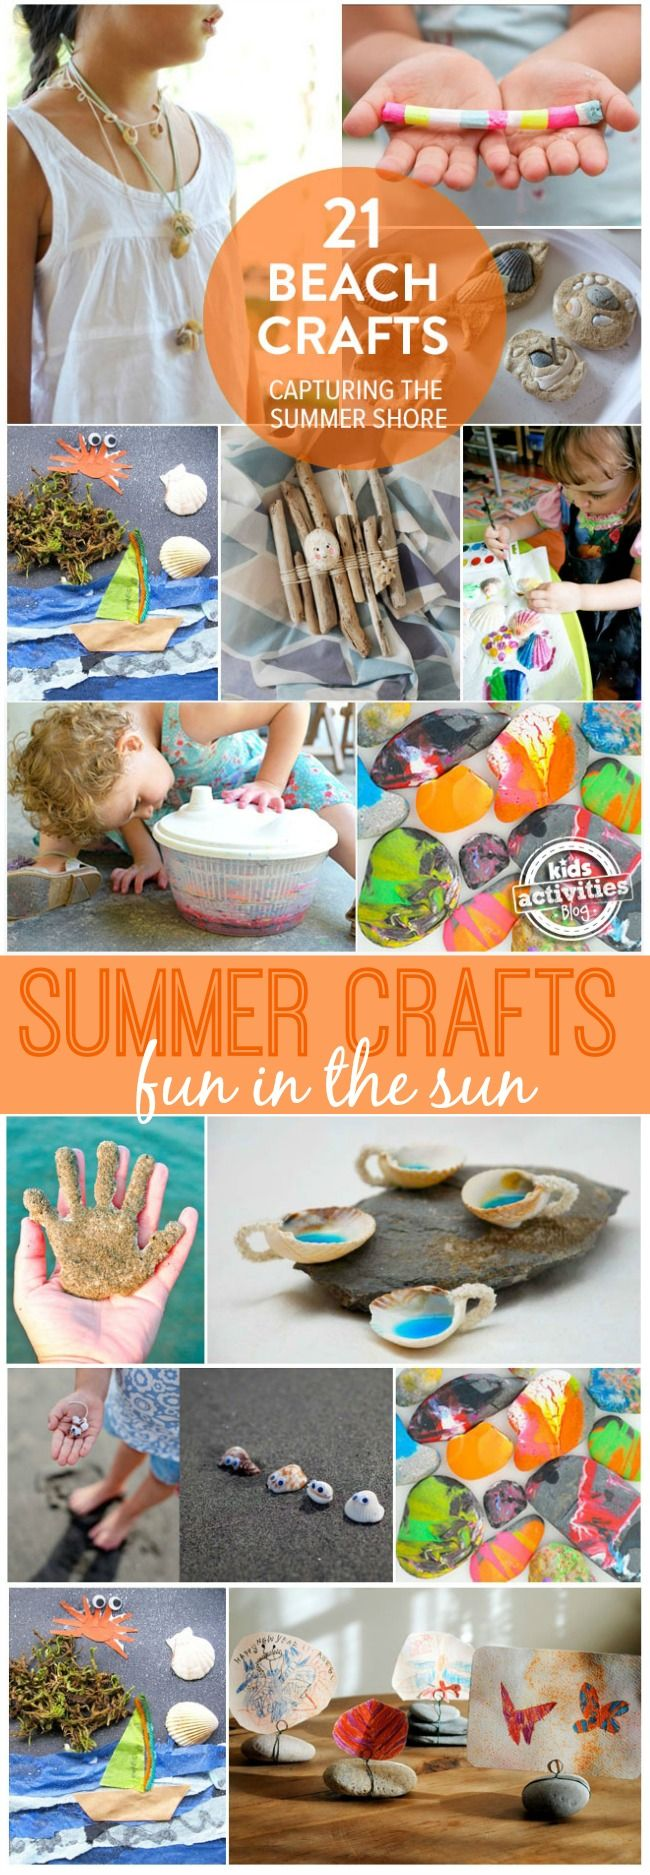 An amazing list of beach crafts for kids.  I love #21 - it's too cute (psst...it's easy to make, too!).